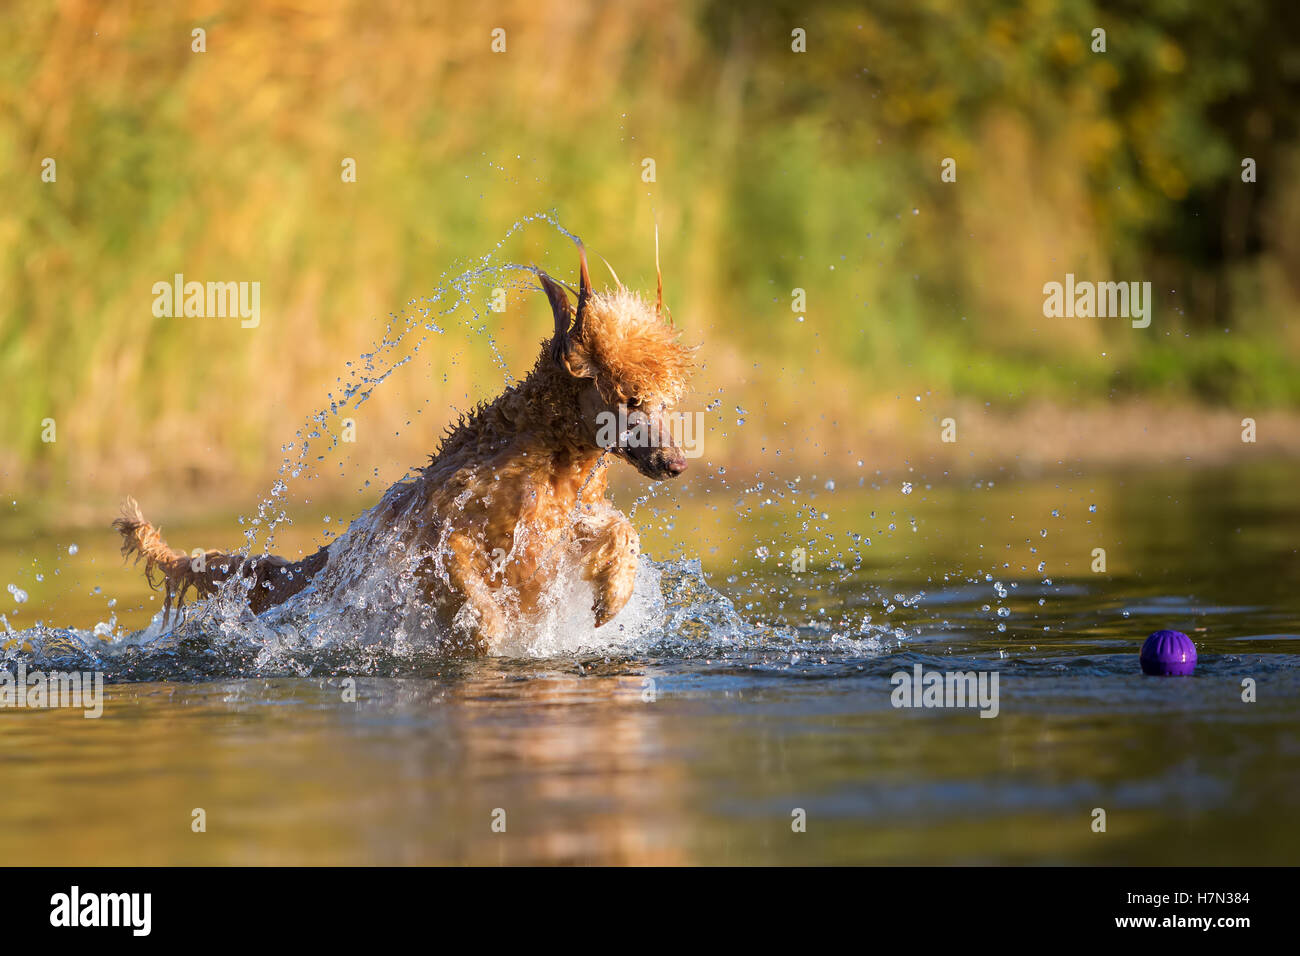 royal poodle playing in a lake in front of autumnal greenery - Stock Image